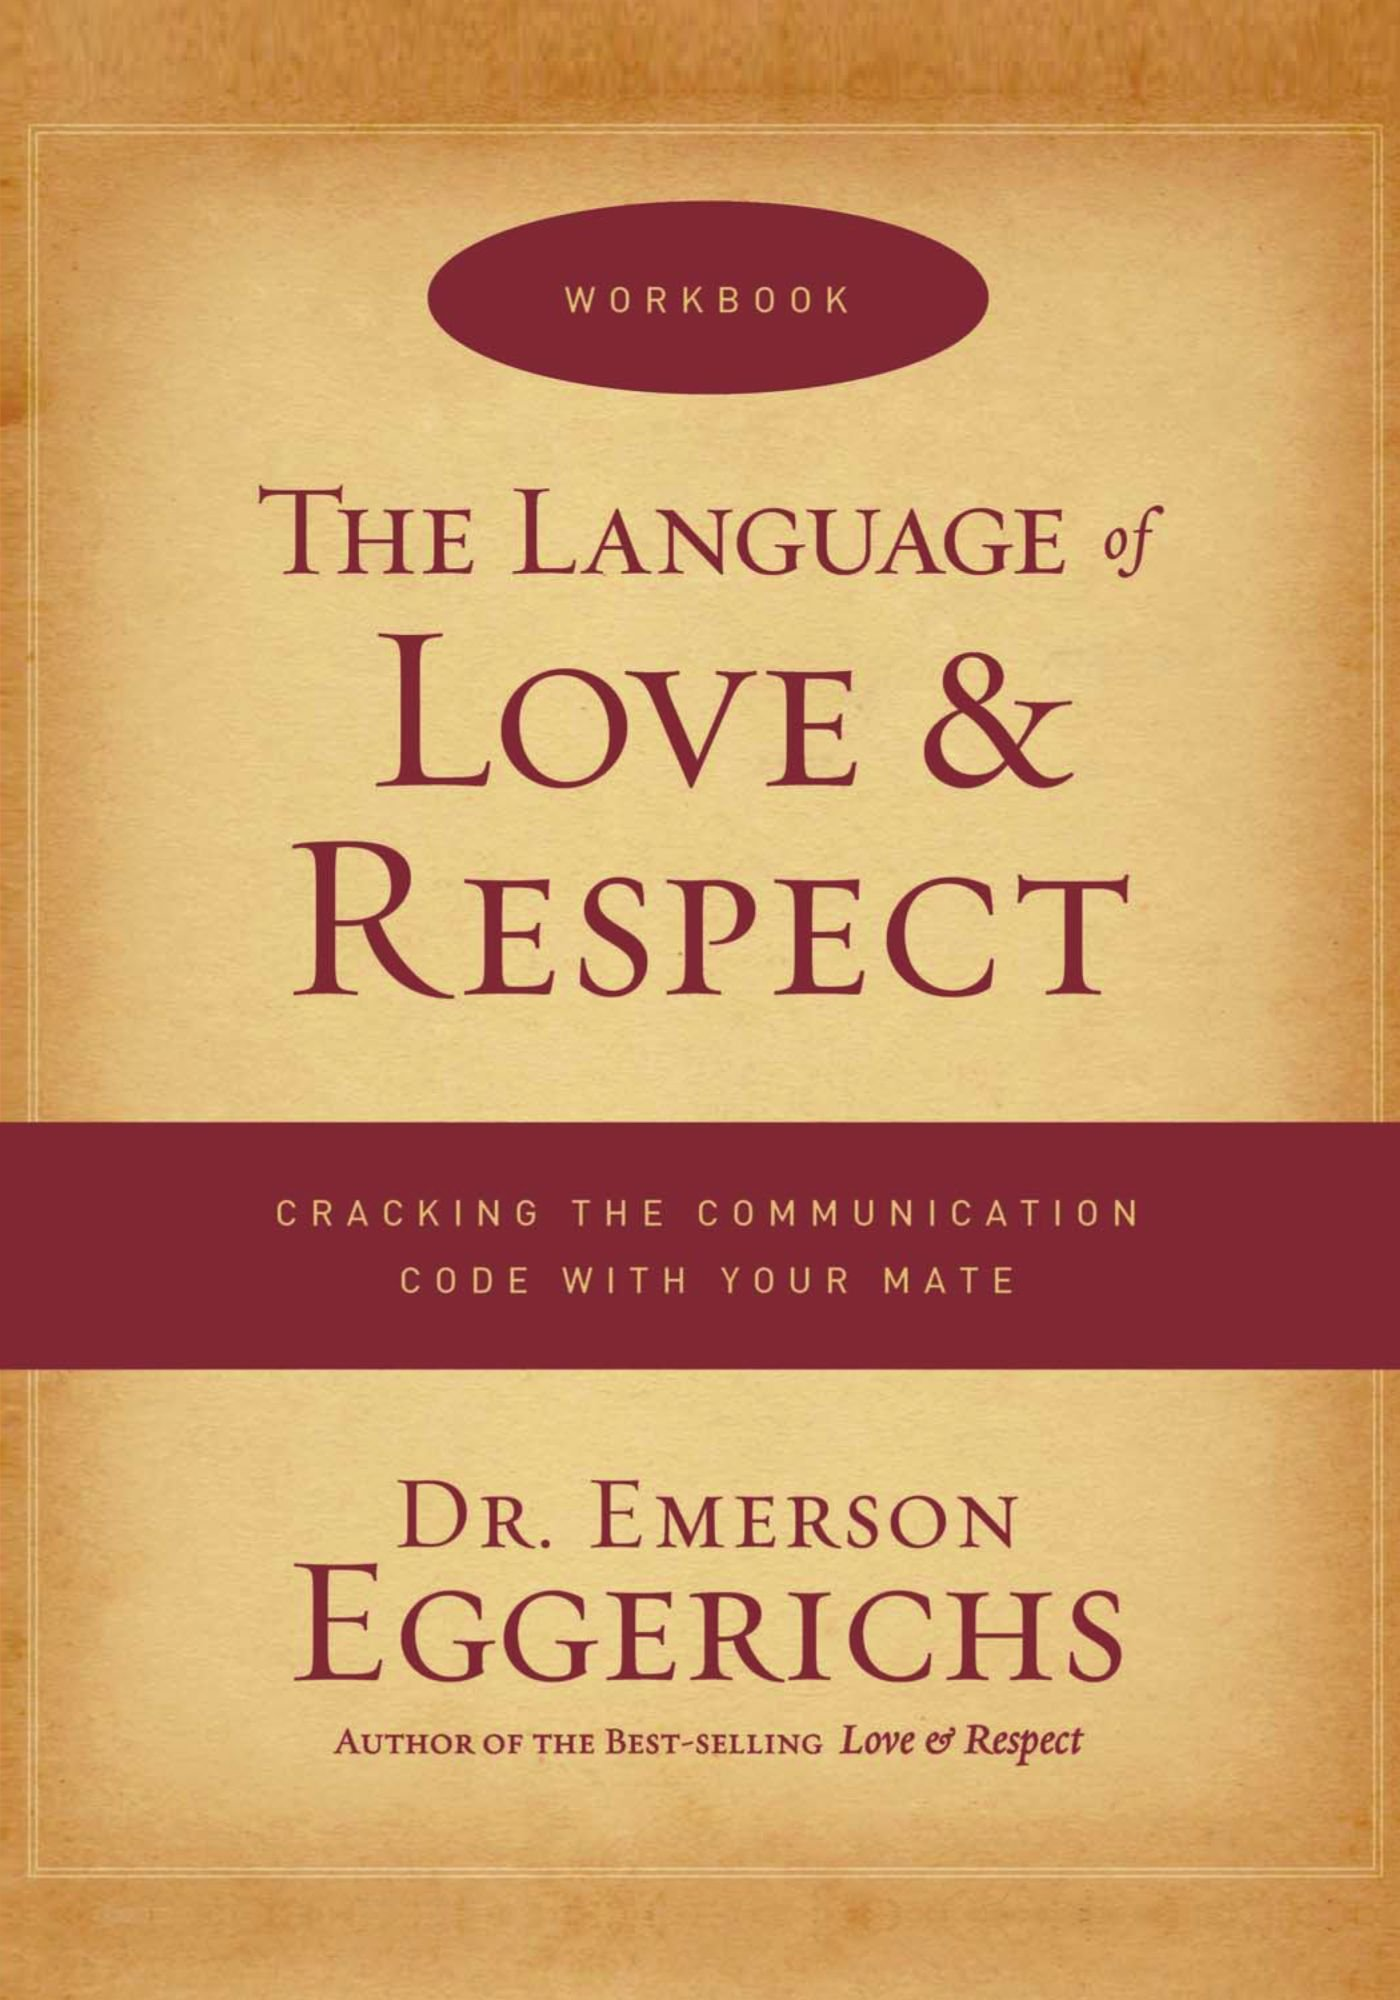 The Language of Love and Respect Workbook: Cracking the Communication Code with Your Mate by HarperCollins Christian Pub.